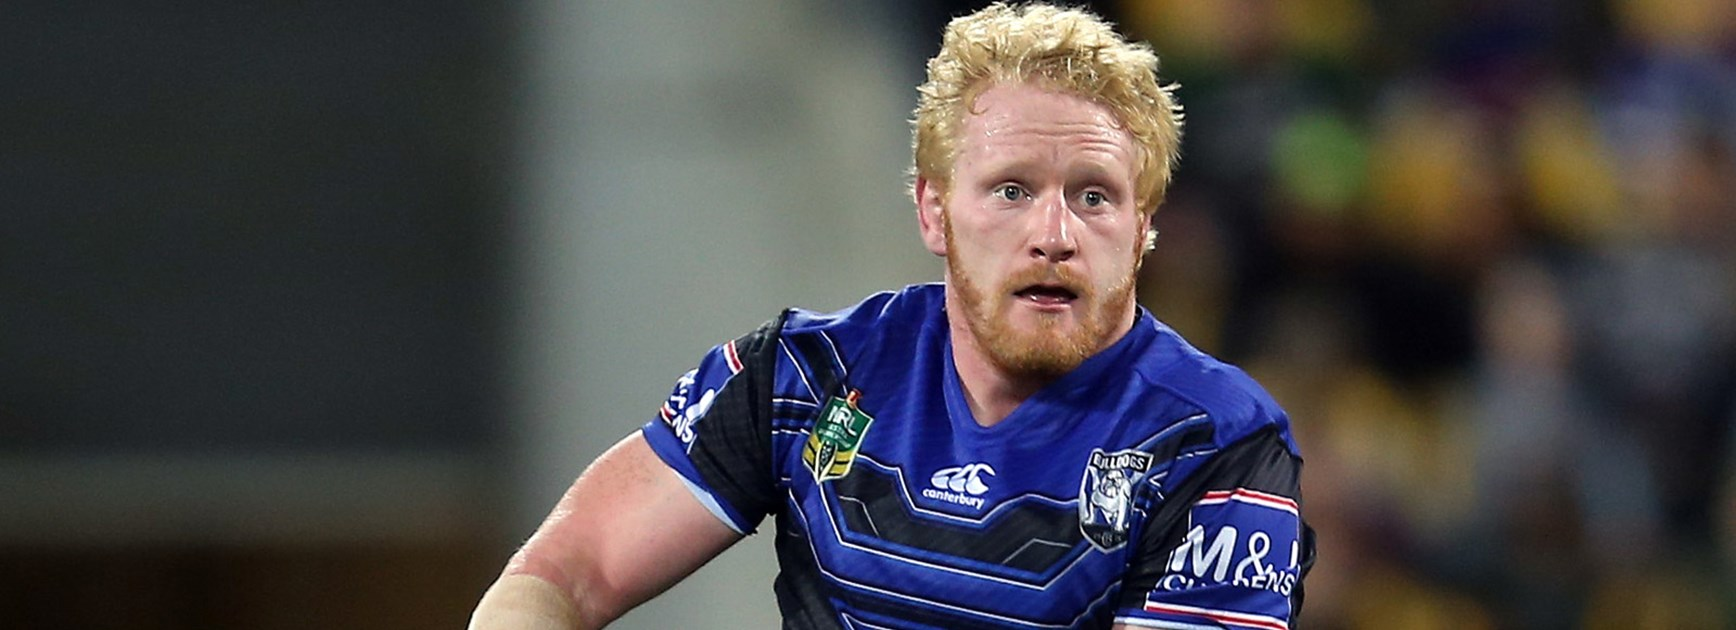 Bulldogs captain James Graham against the Warriors in Round 7.